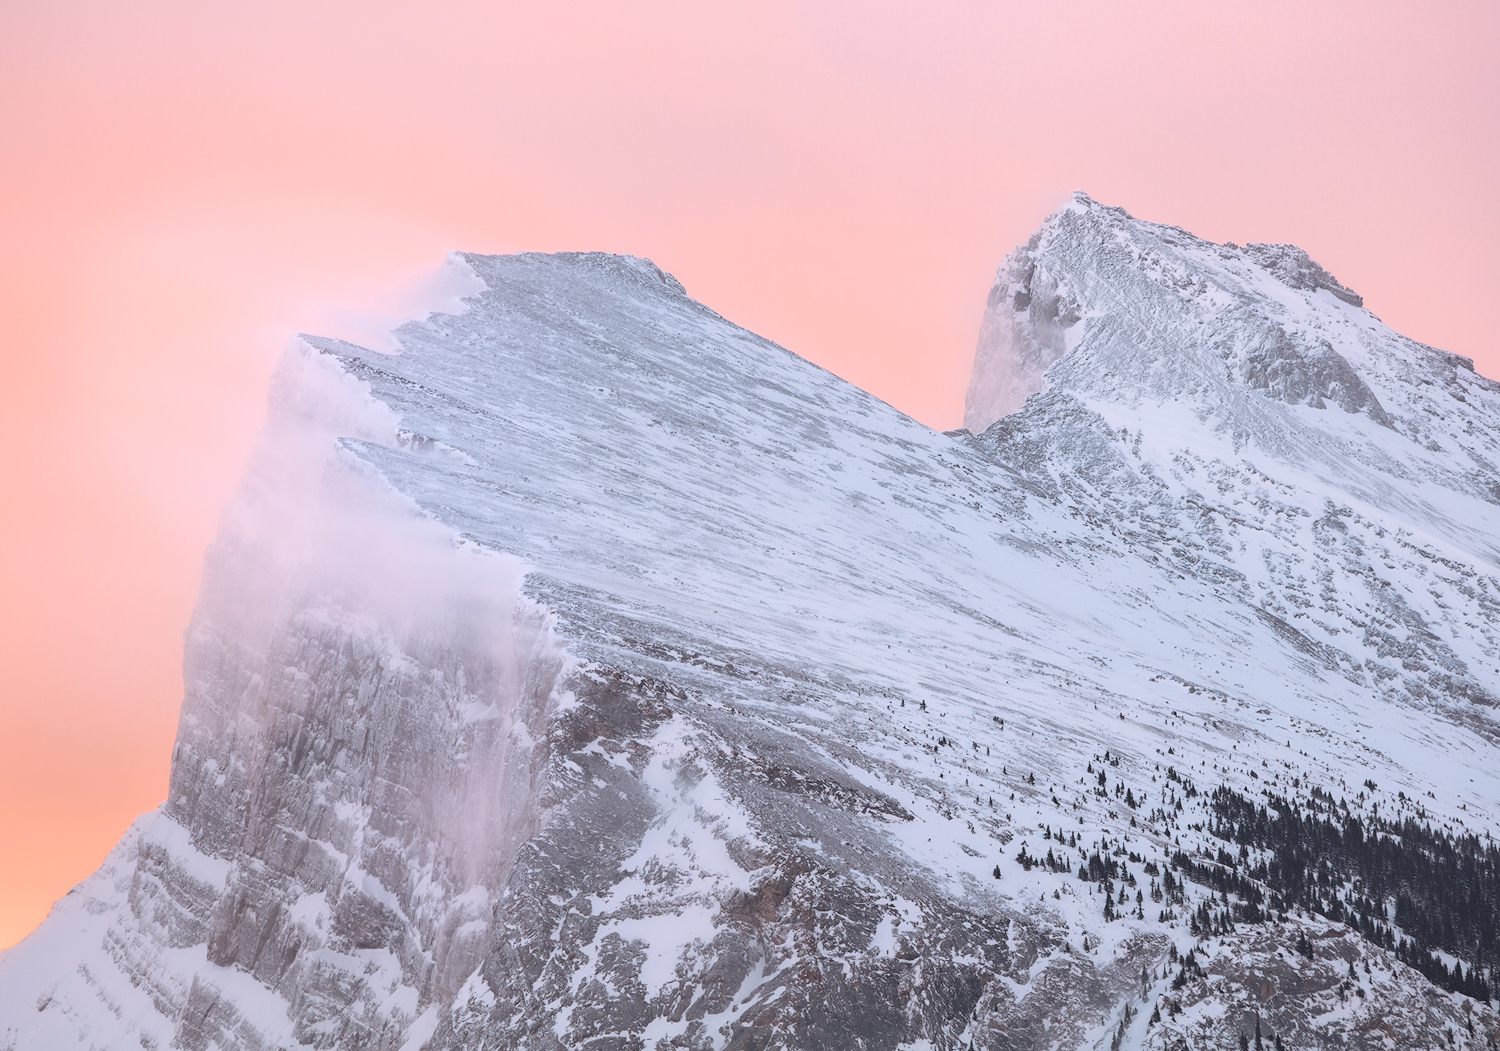 Snow Streamers, Mount Rundle,   A windy dawn on Mount Rundle, near Banff (February 10, 2017)